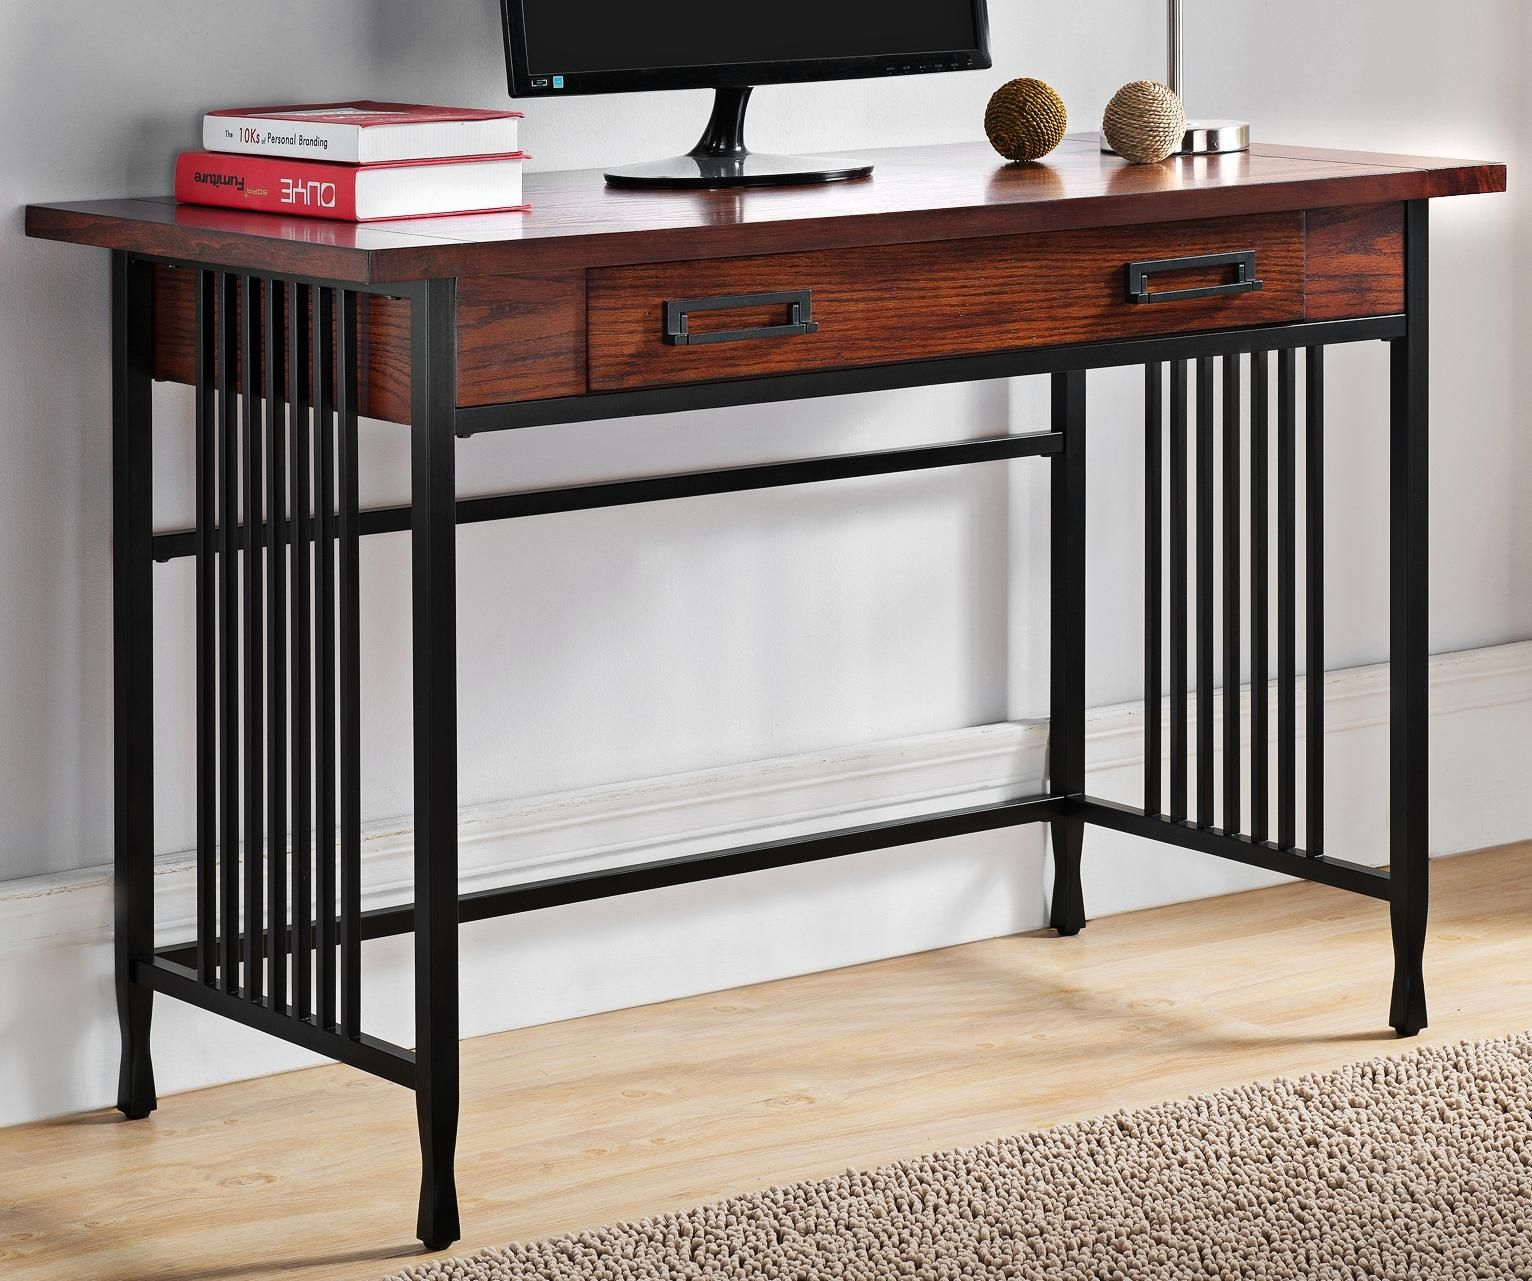 Tables Ironcraft 46 Wide Mission Oak Computer Writing Desk Wood Writing Desk Mission Oak Home